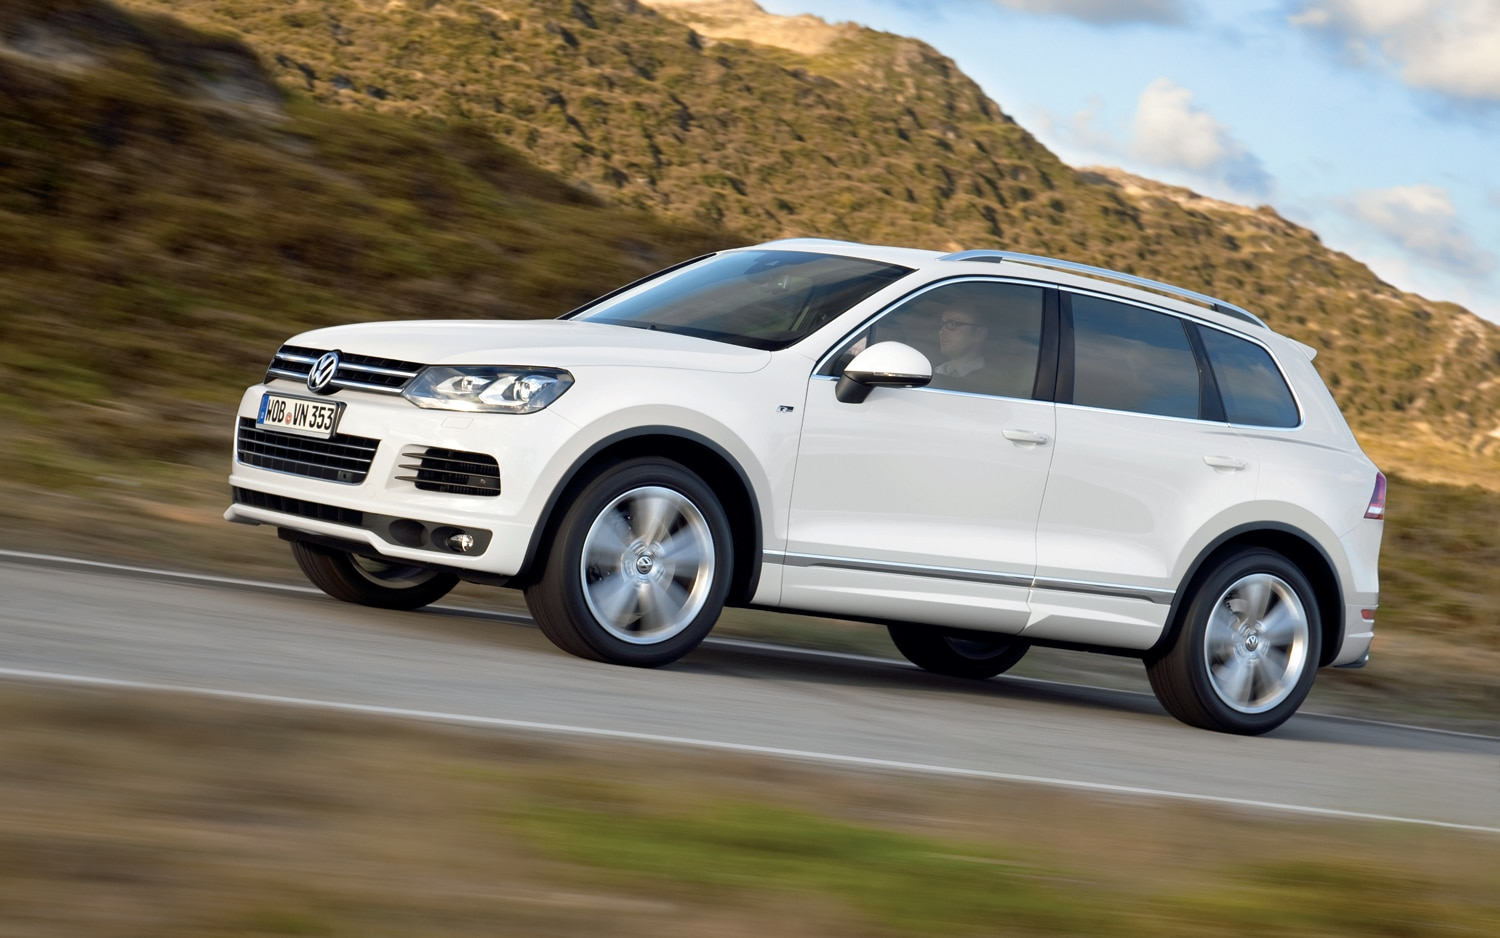 2014 volkswagen touareg x special edition priced at 57 080. Black Bedroom Furniture Sets. Home Design Ideas